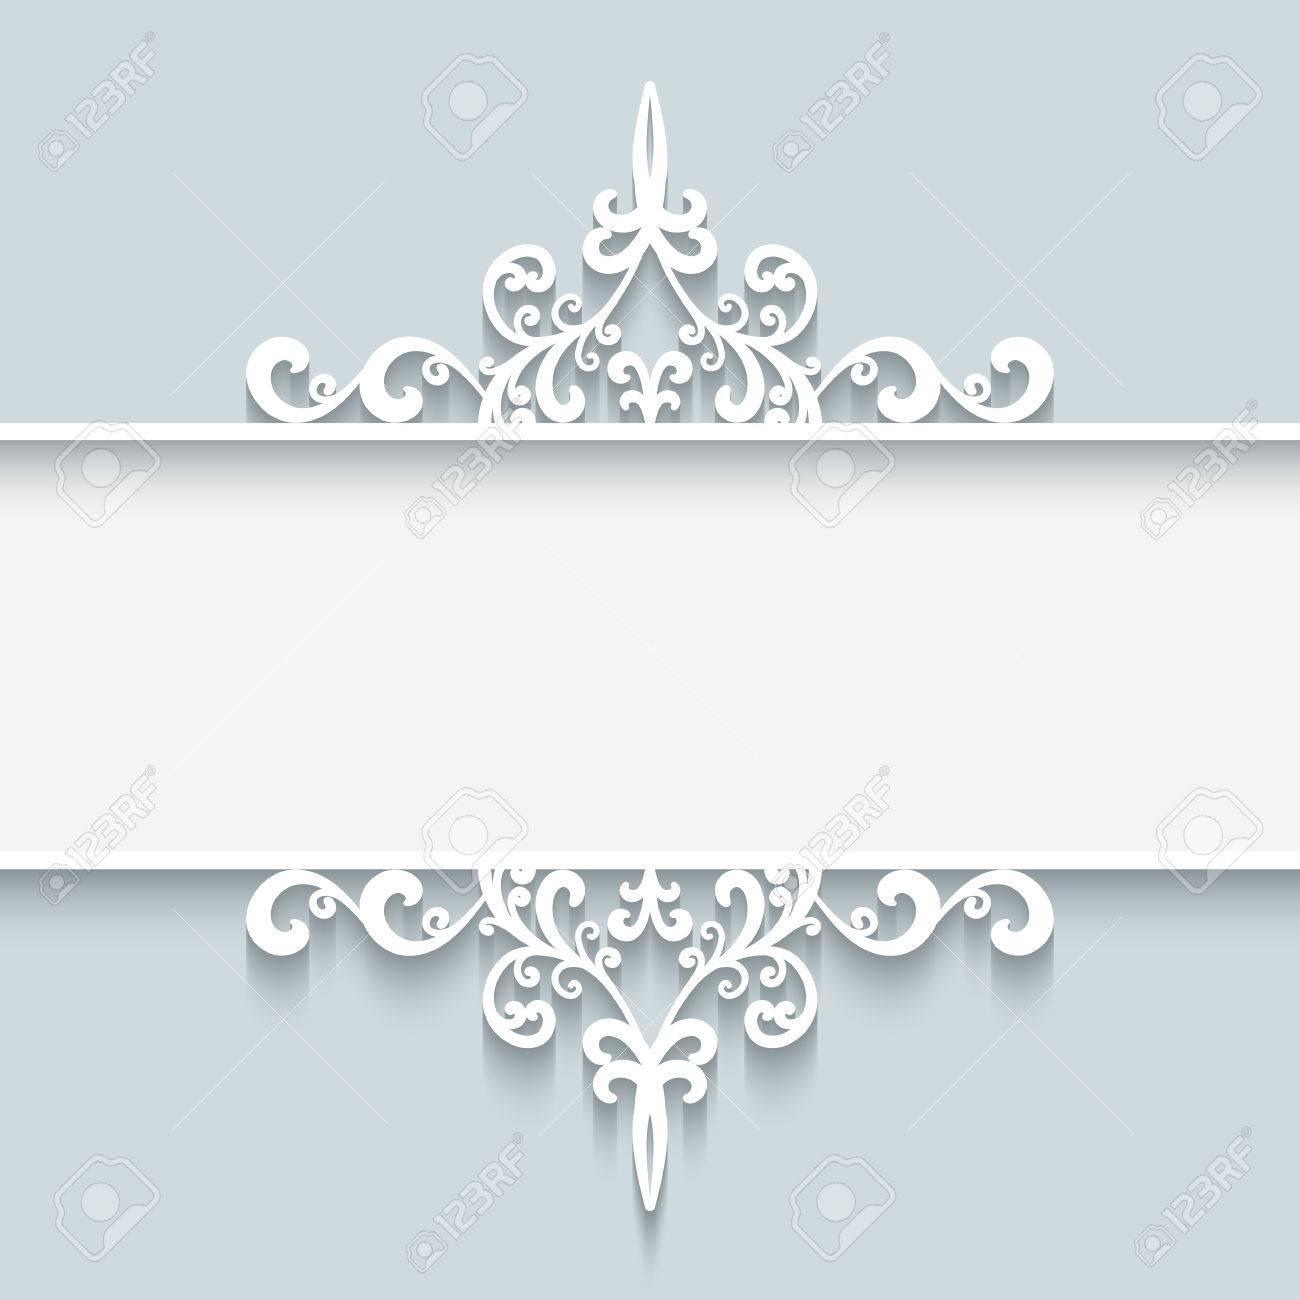 Abstract background with paper divider header ornamental frame - 40446273